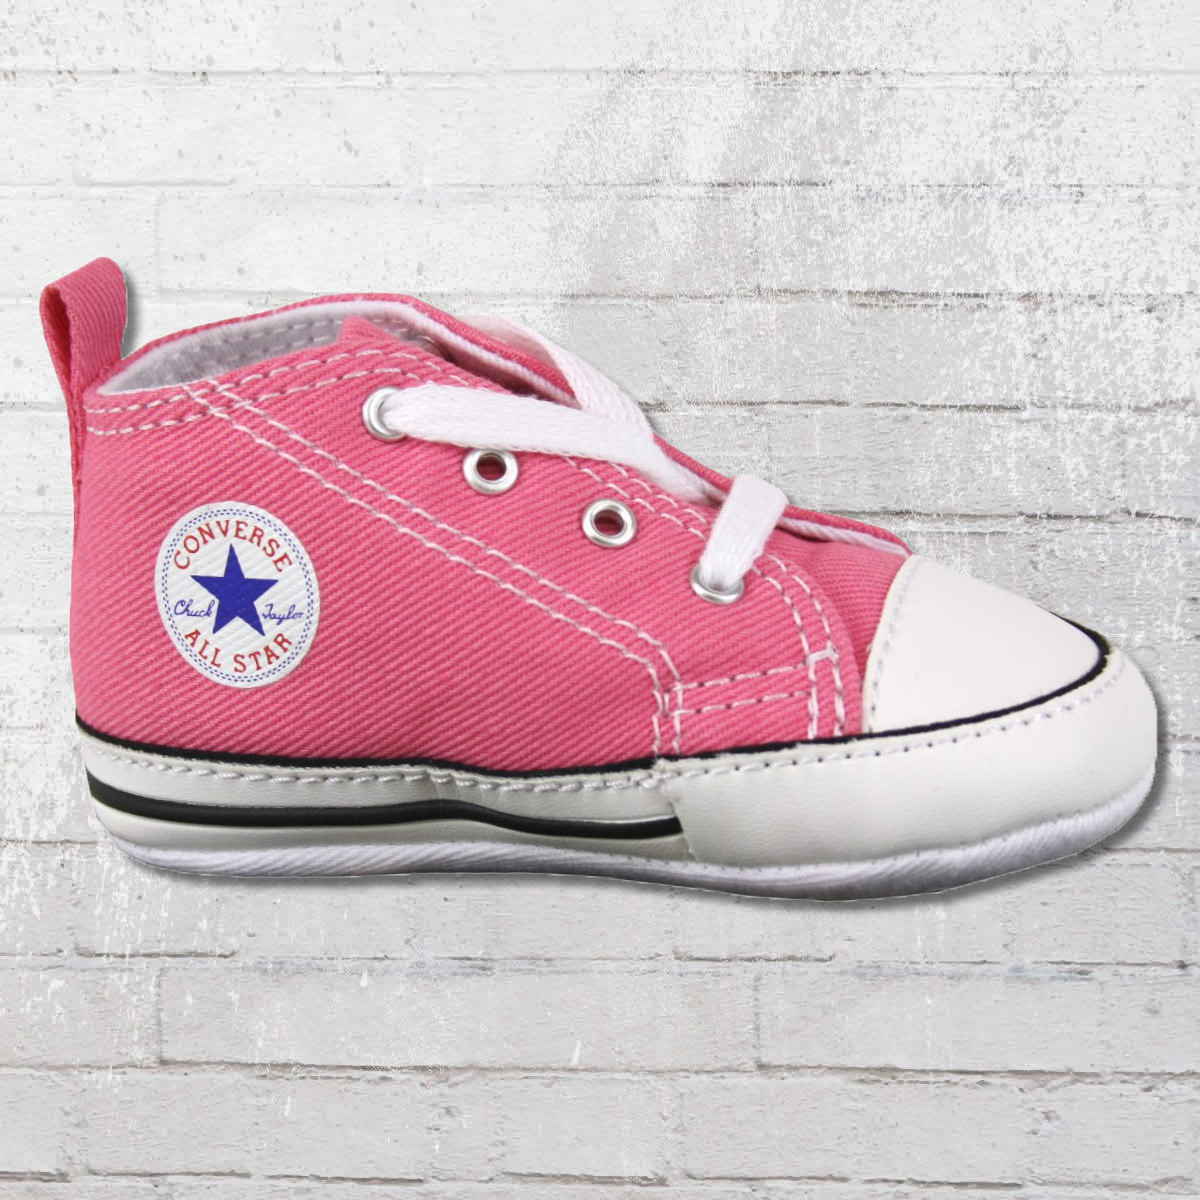 Order now | Converse Shoes First Star Baby Chucks 88871 pink